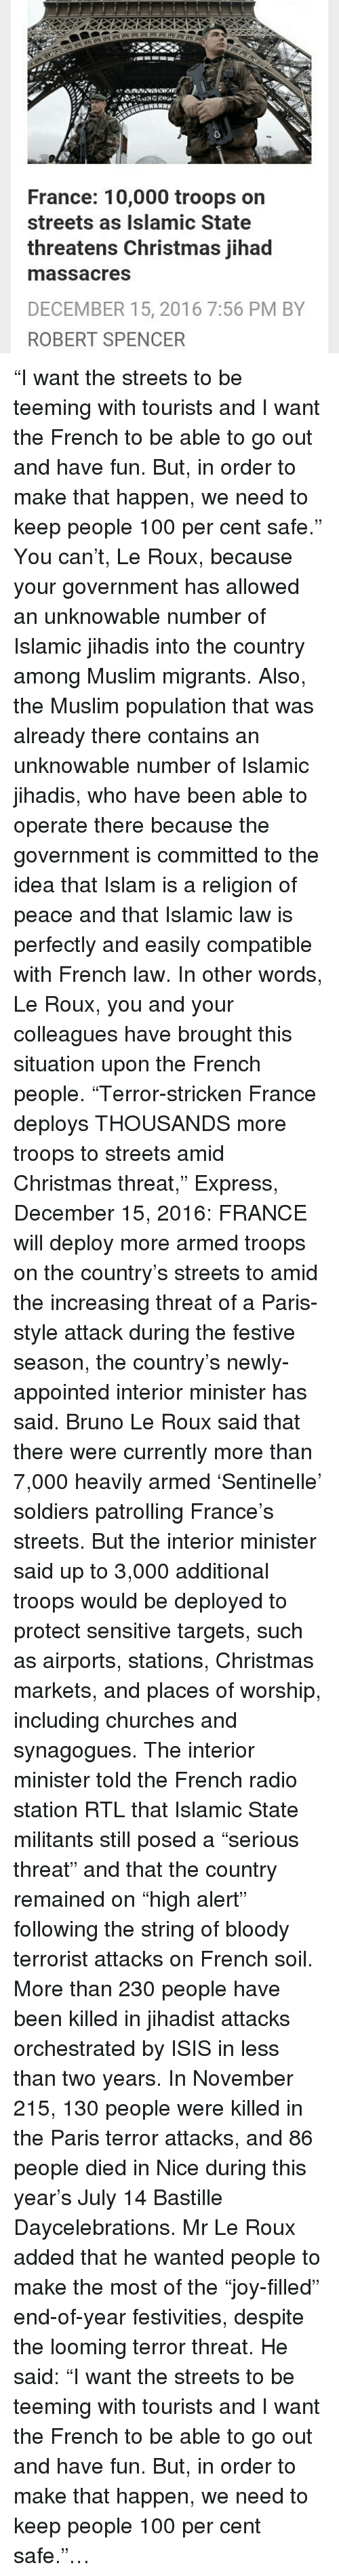 France 10000 Troops on Streets as Islamic State Threatens Christmas ...